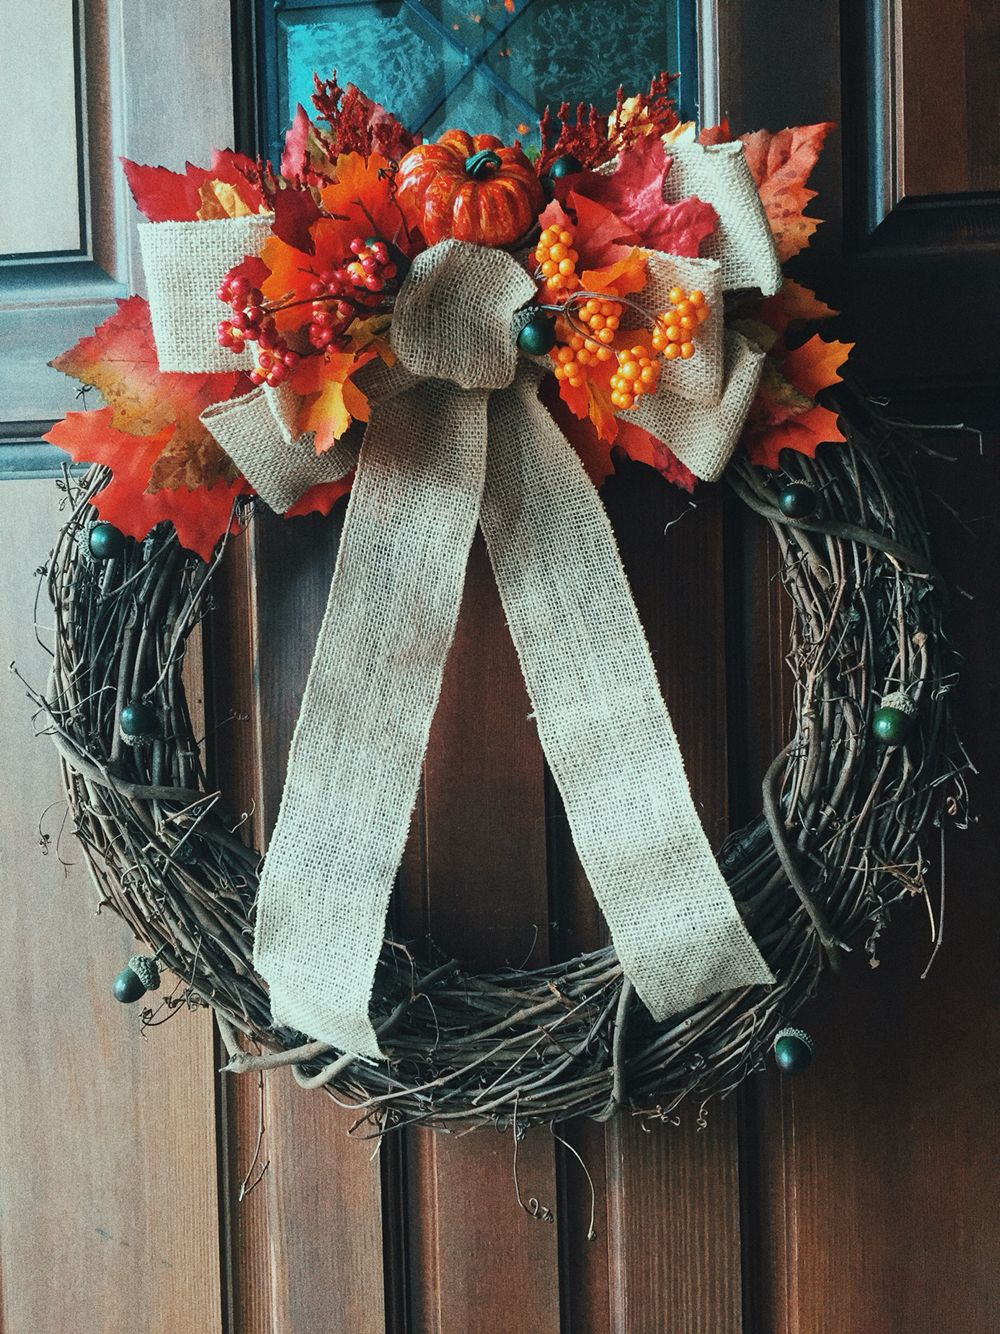 DIY Fall Wreath supplies from Michaels Diy fall wreath